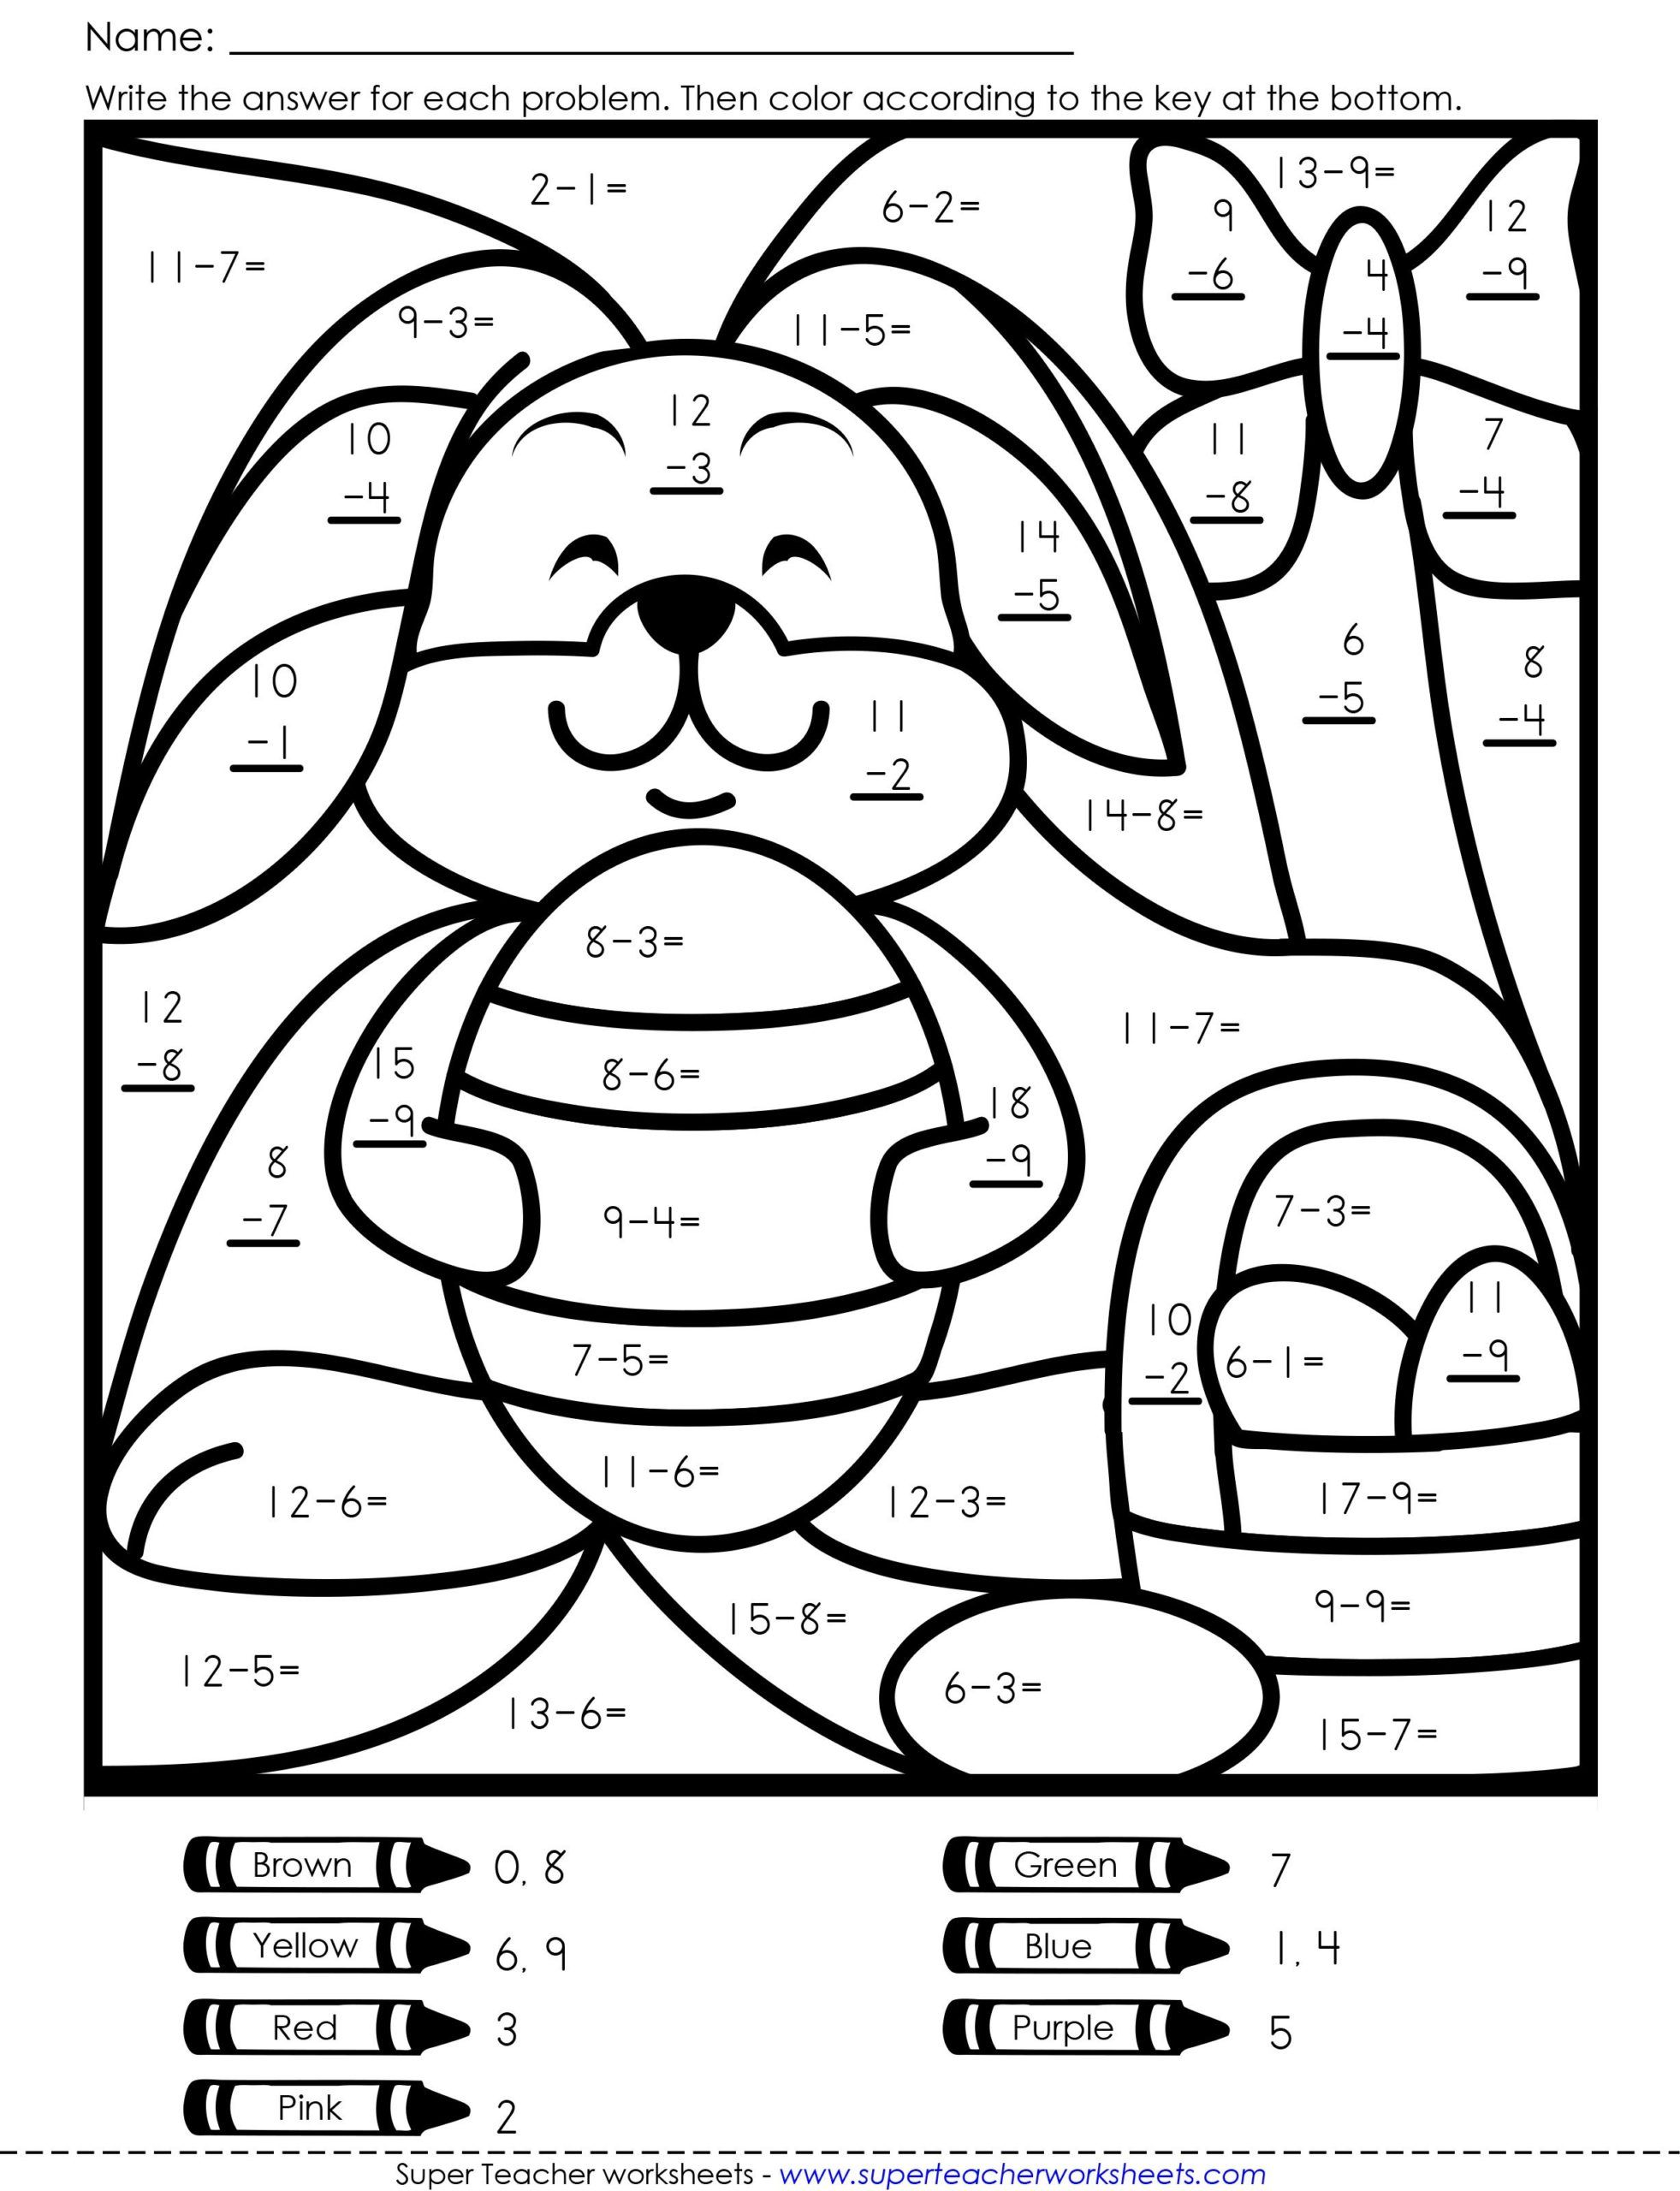 Coloring Addition Worksheets For Grade 1 - colouring mermaid   Easter math [ 2560 x 1963 Pixel ]